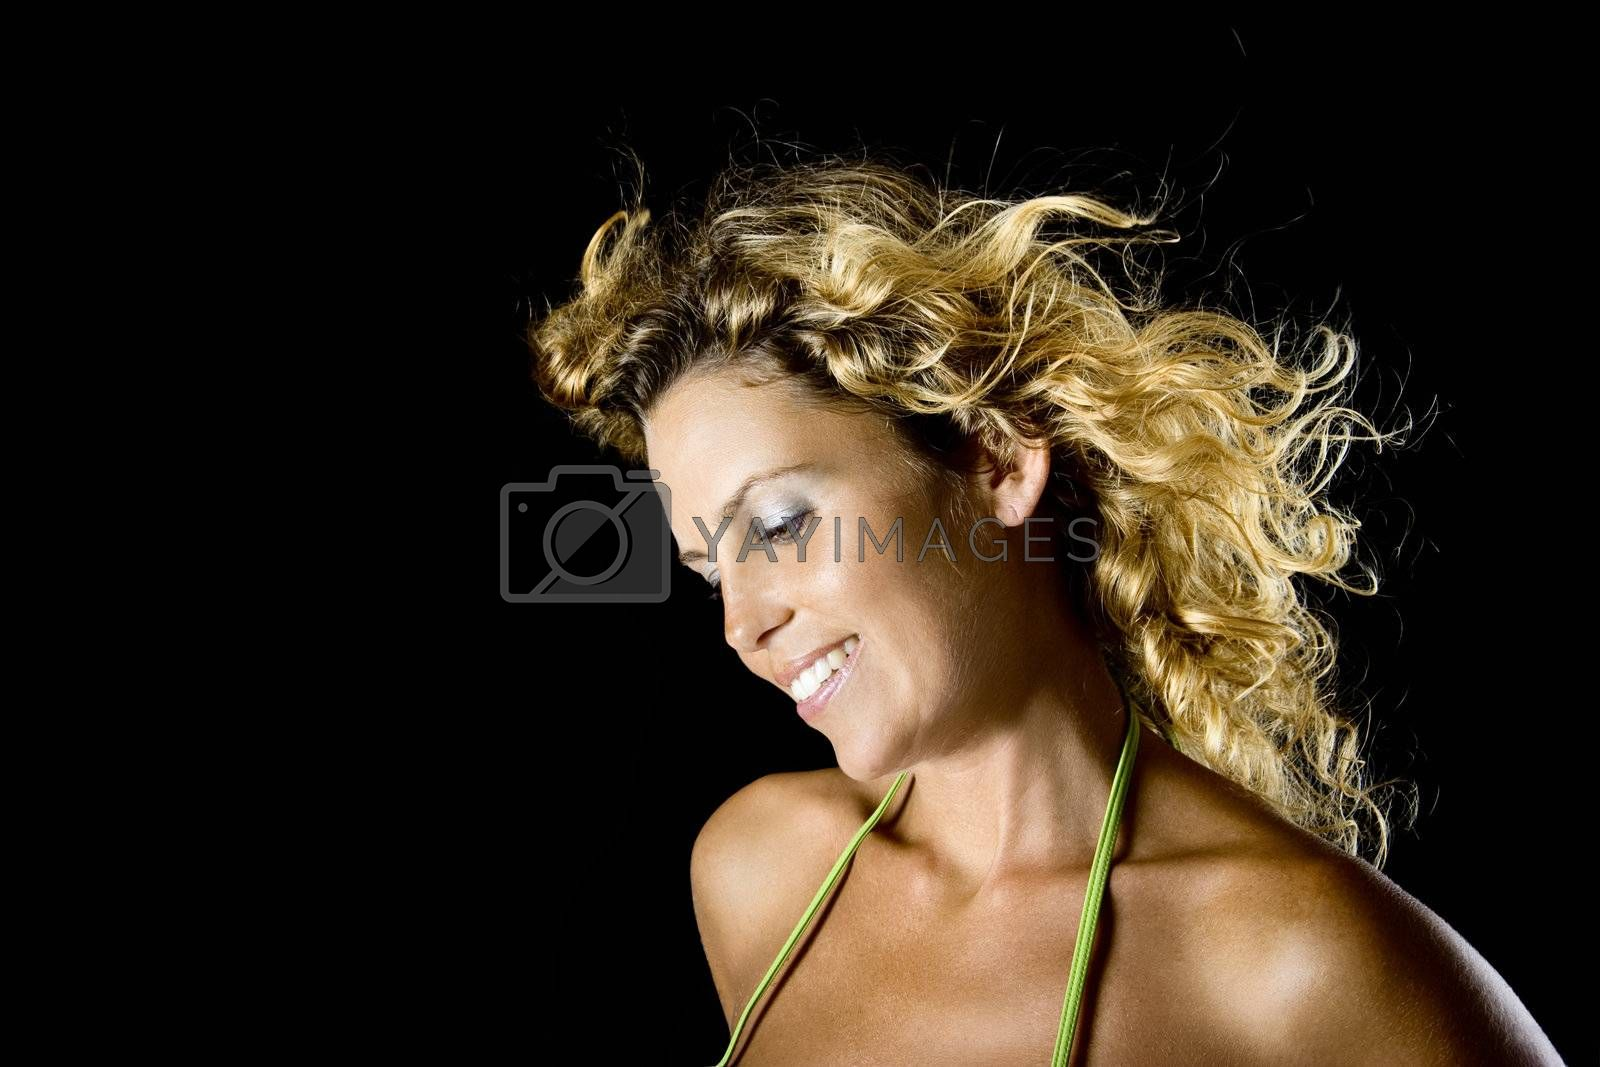 Beautiful woman portrait isolated on black background